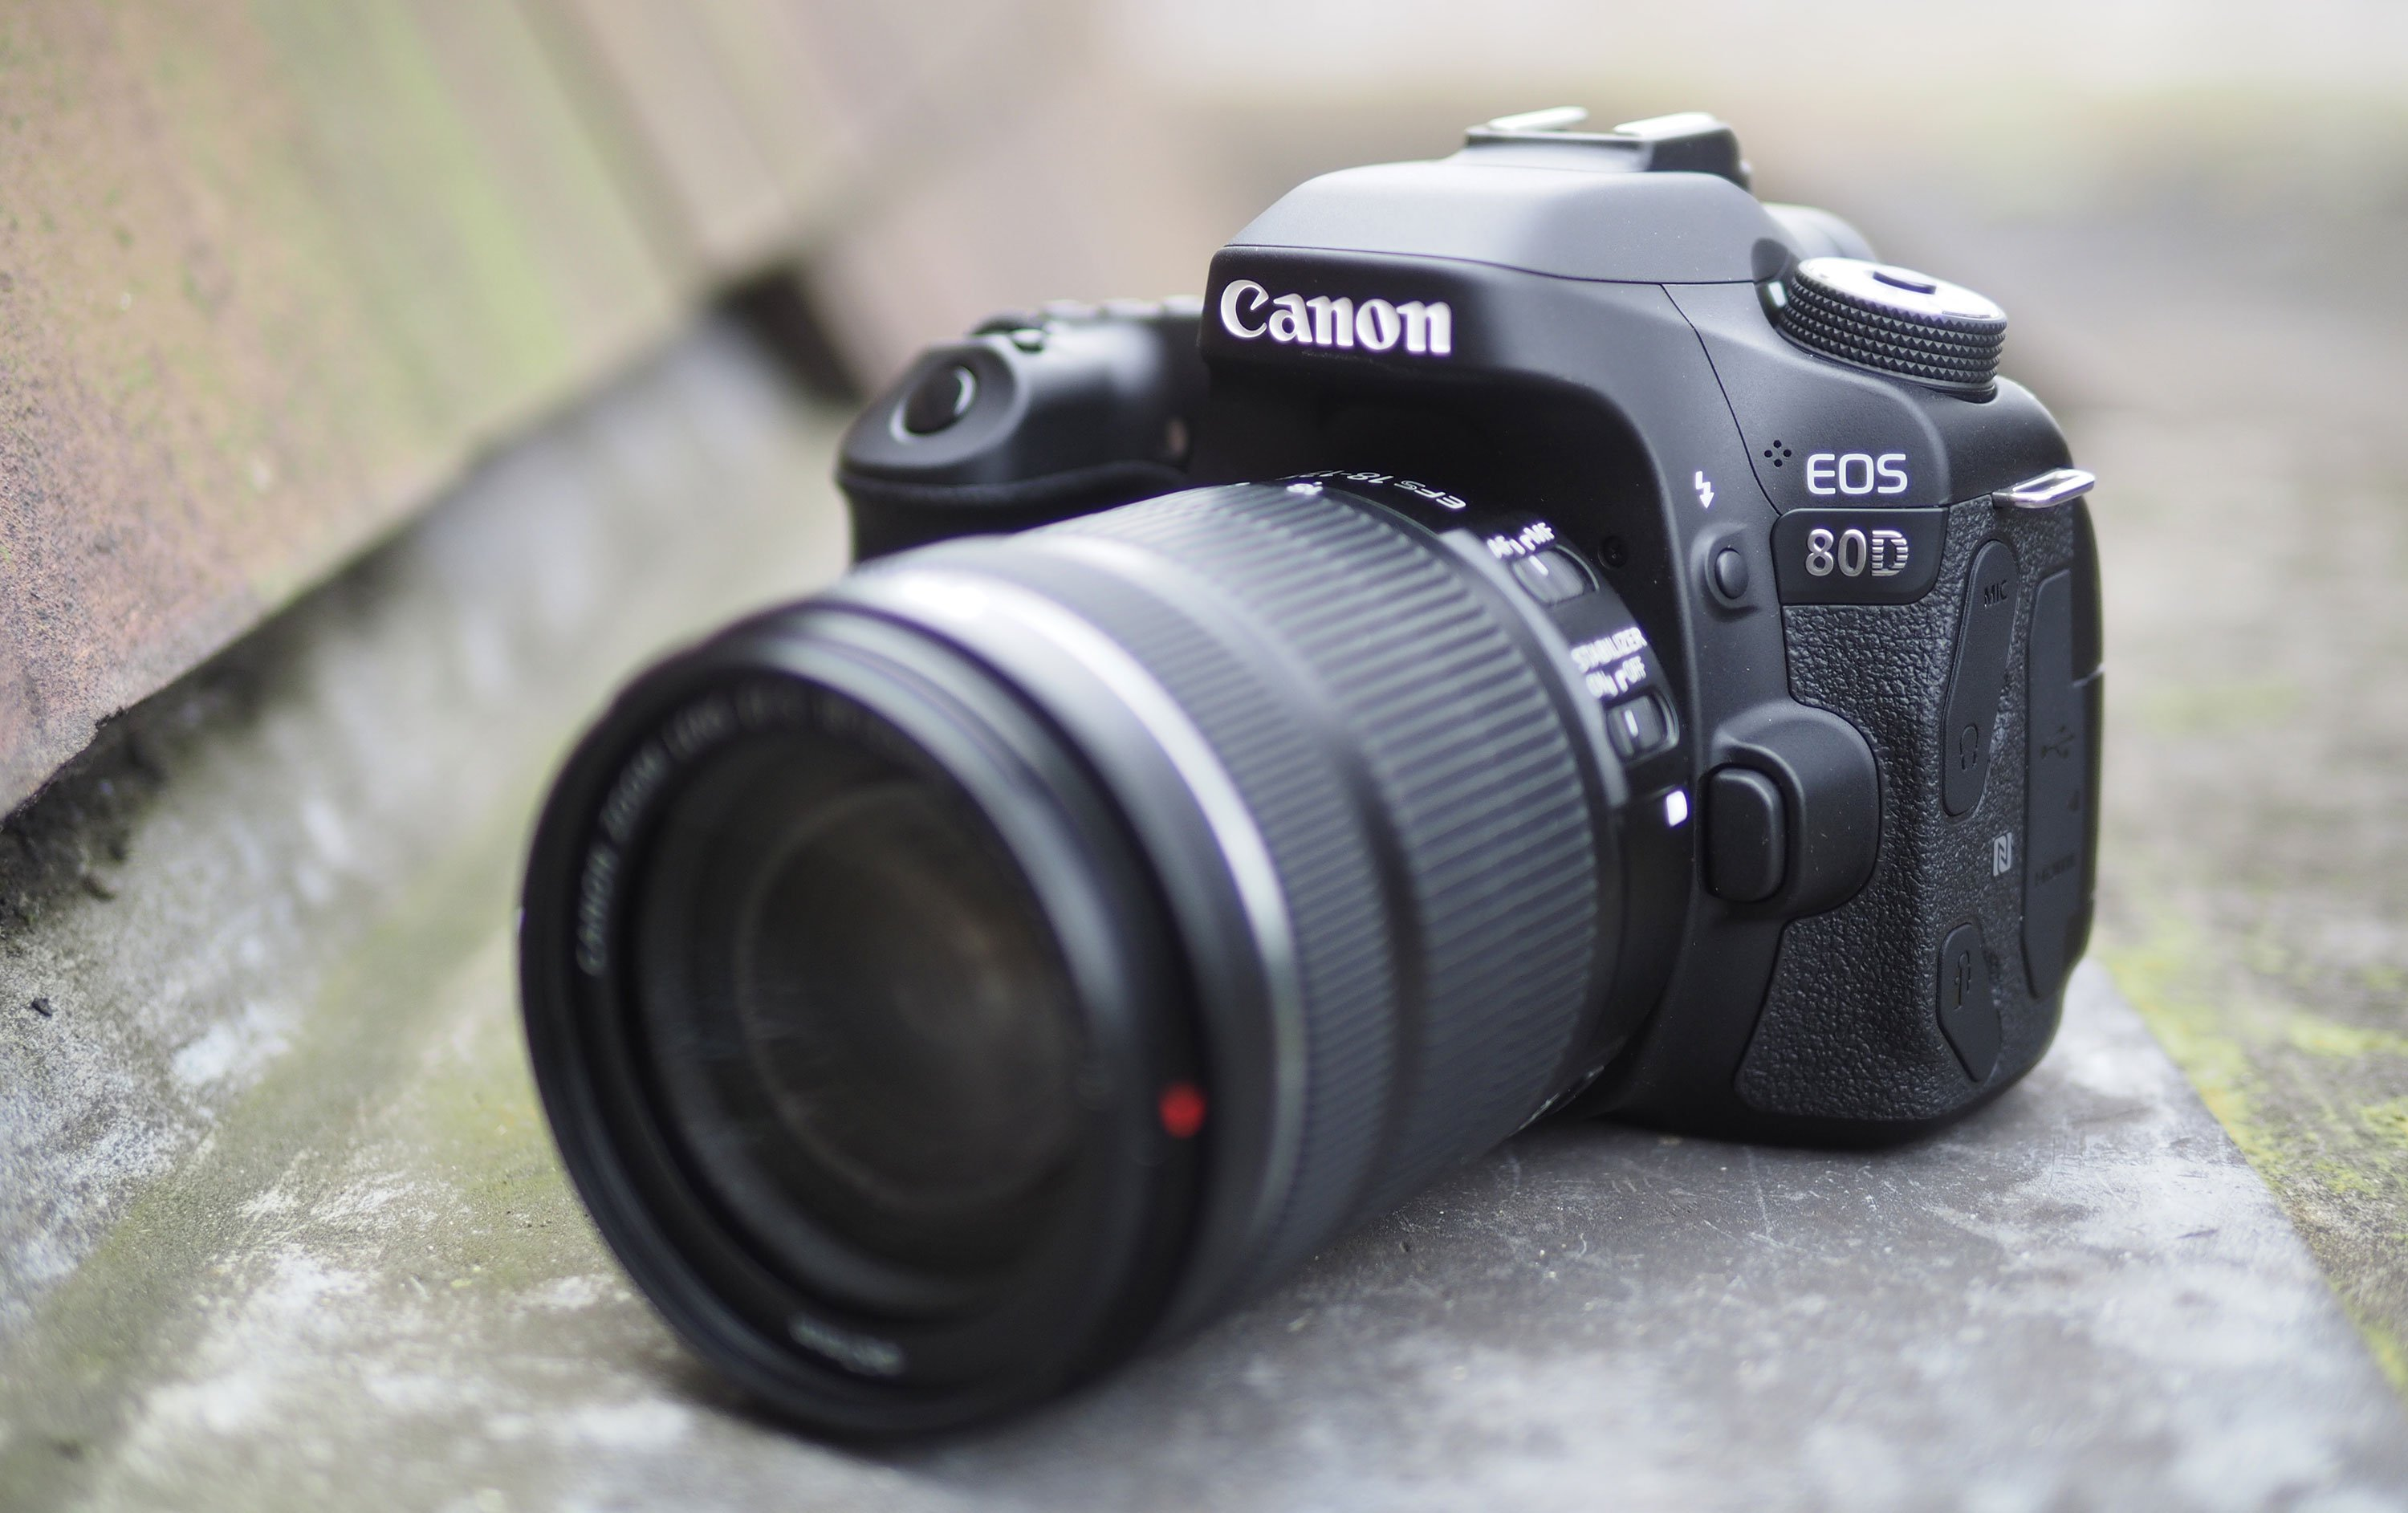 canon eos 80d review cameralabs. Black Bedroom Furniture Sets. Home Design Ideas